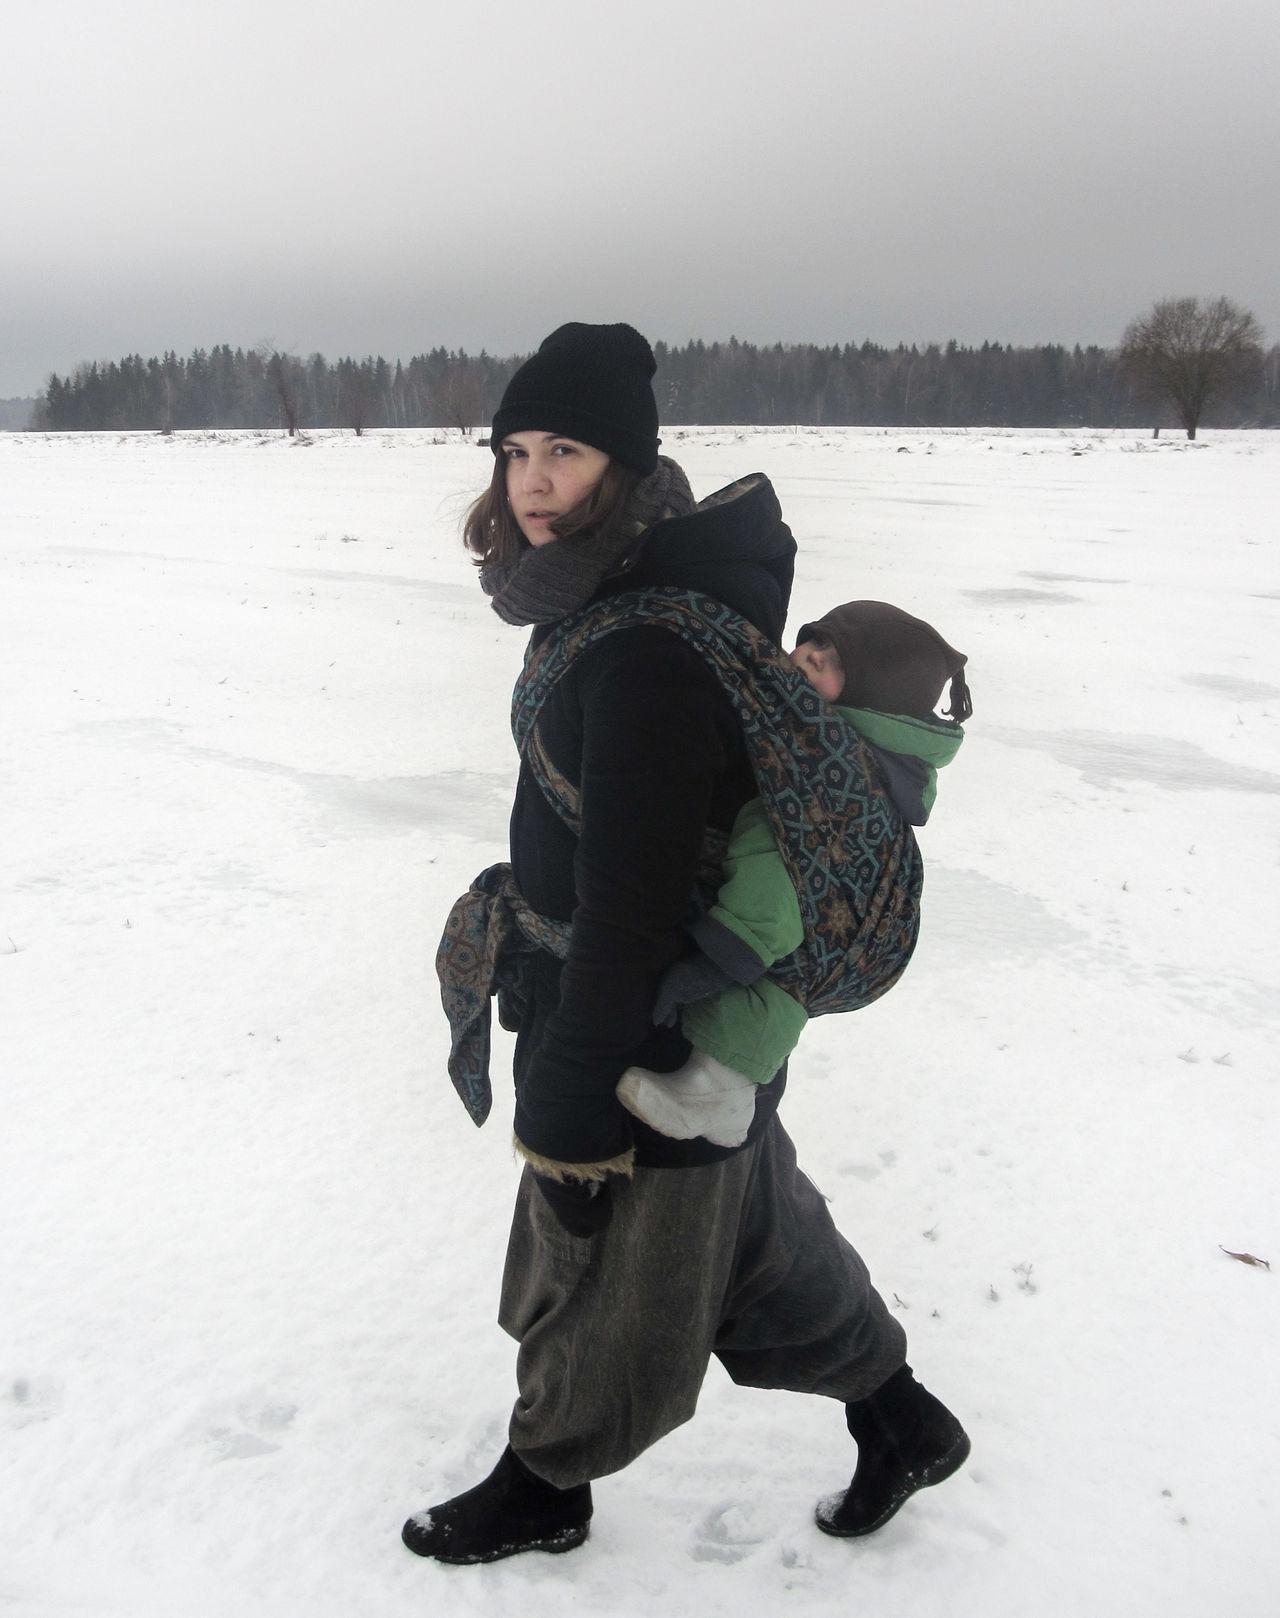 If on a winter's day... Baby Carrier Baby Sling Babywearing Beauty In Nature Bonding Childhood Cold Temperature Day Family With One Child Full Length Happiness Leisure Activity Lifestyles Looking At Camera Mother And Child Nature Outdoors Portrait Real People Snow The Portraitist - 2017 EyeEm Awards Togetherness Walking Warm Clothing Winter